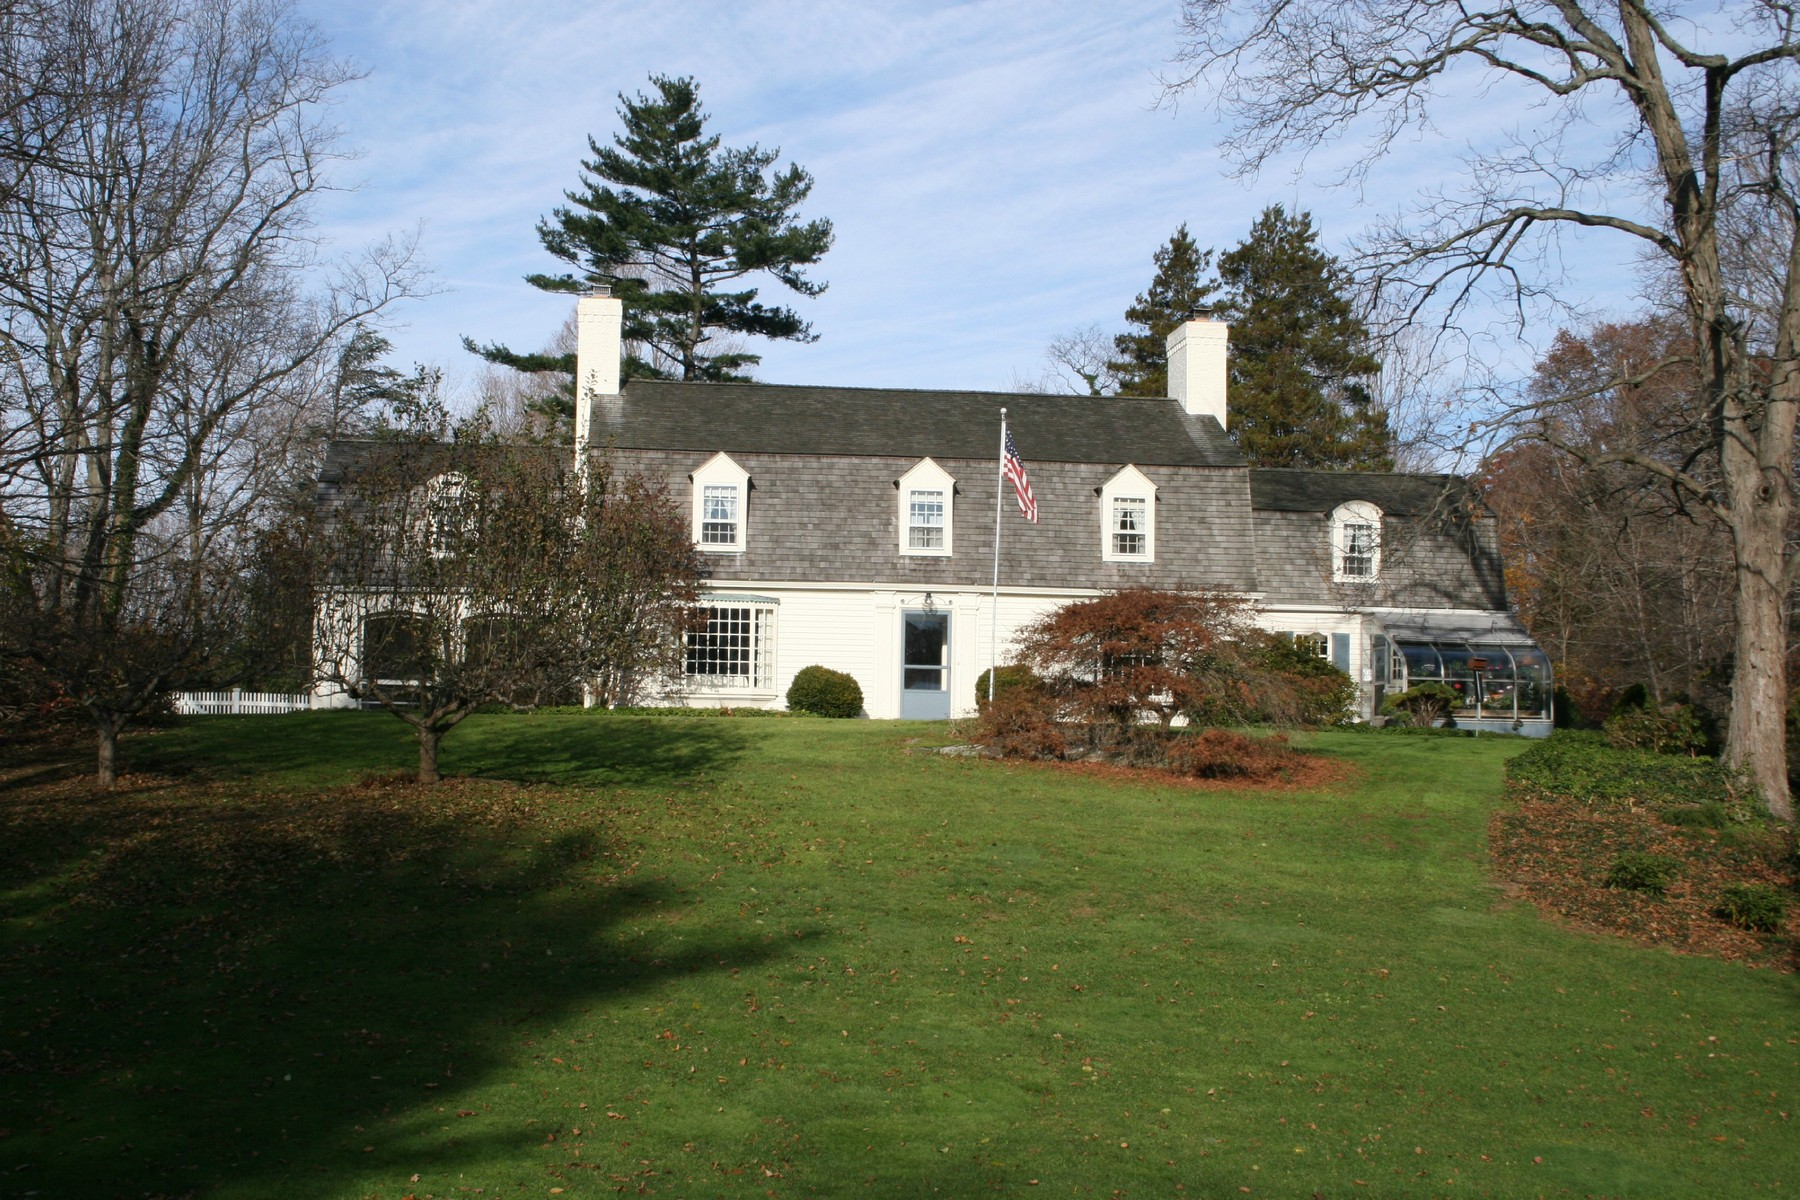 Single Family Home for Sale at 350 Harbor Road Southport, Fairfield, Connecticut, 06890 United States